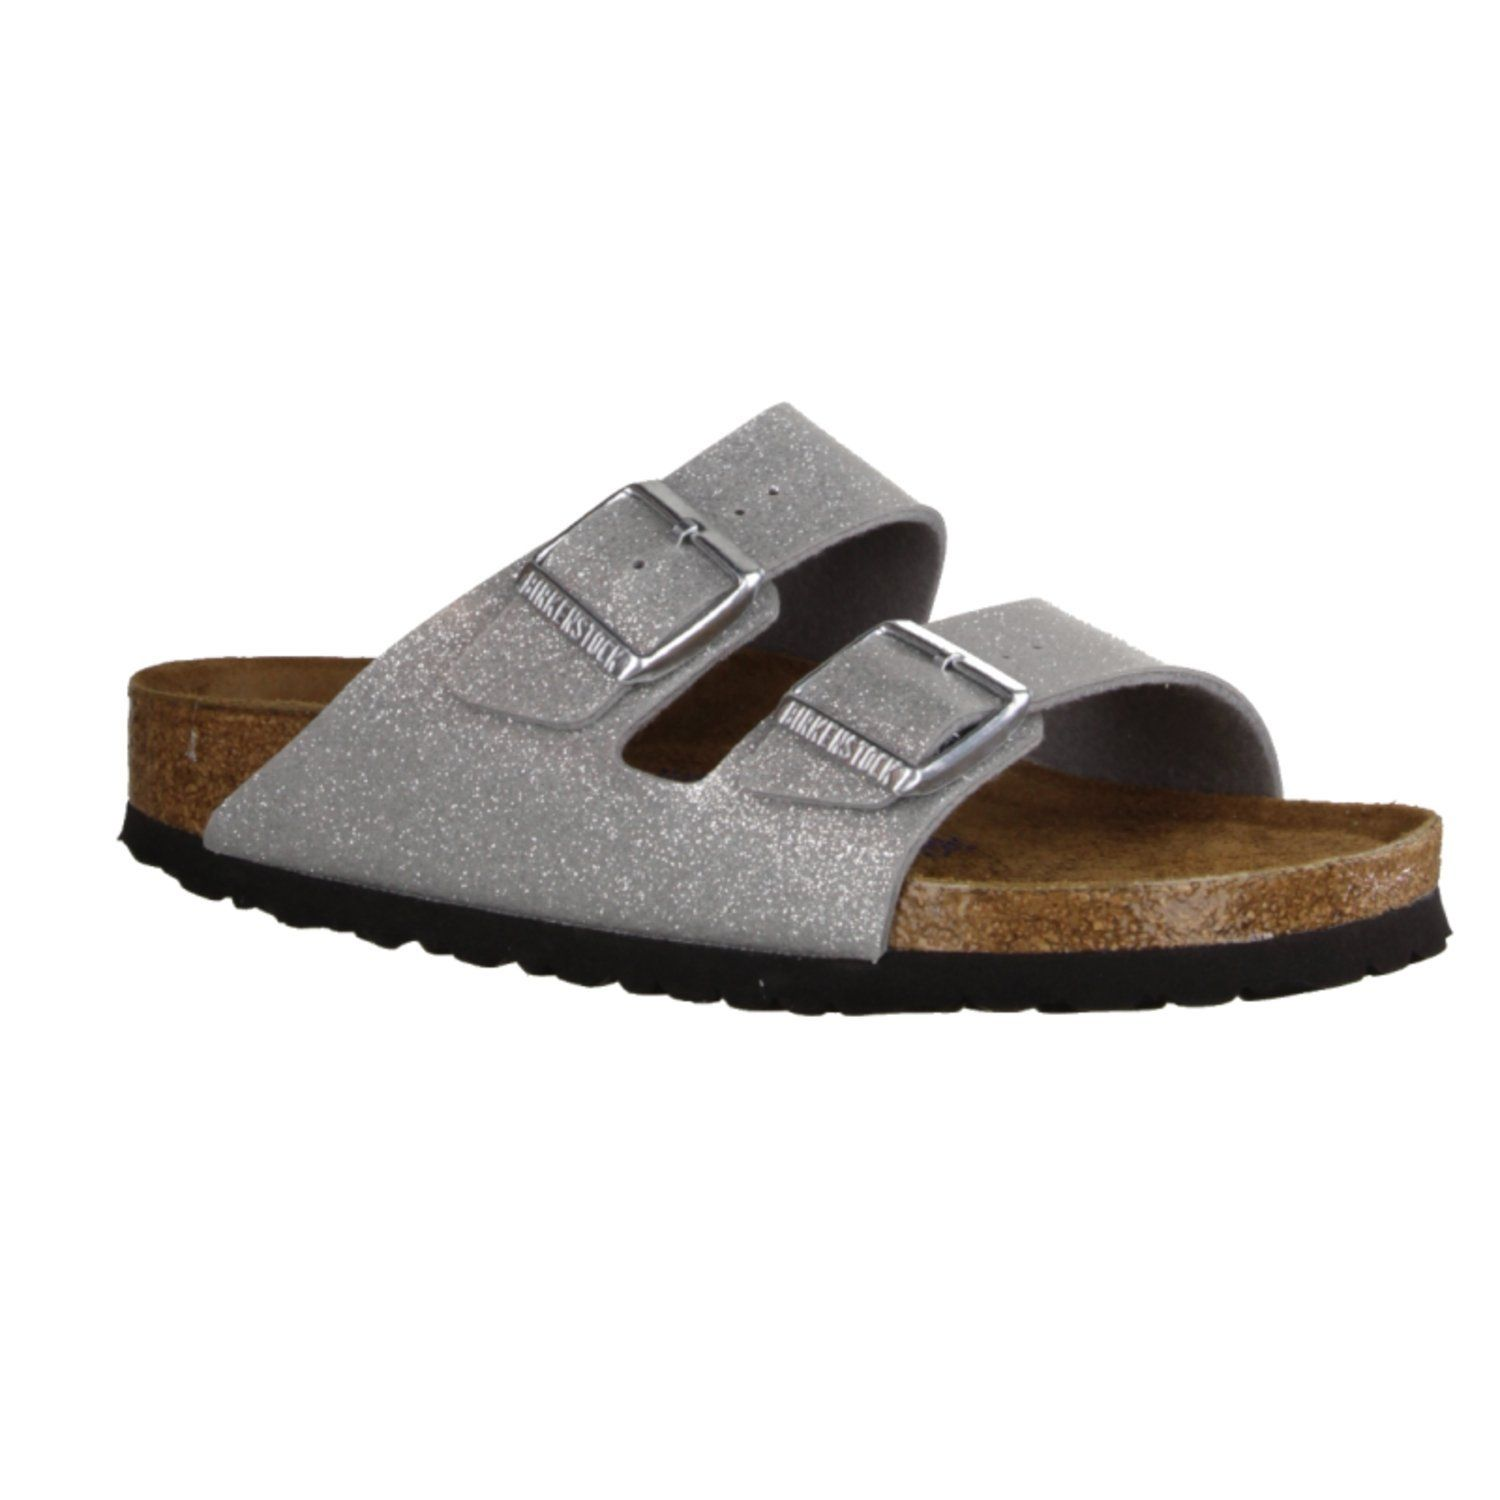 4f5dd77e64022a Birkenstock Damen Sandale Arizona Magic Galaxy  Amazon.de  Schuhe    Handtaschen